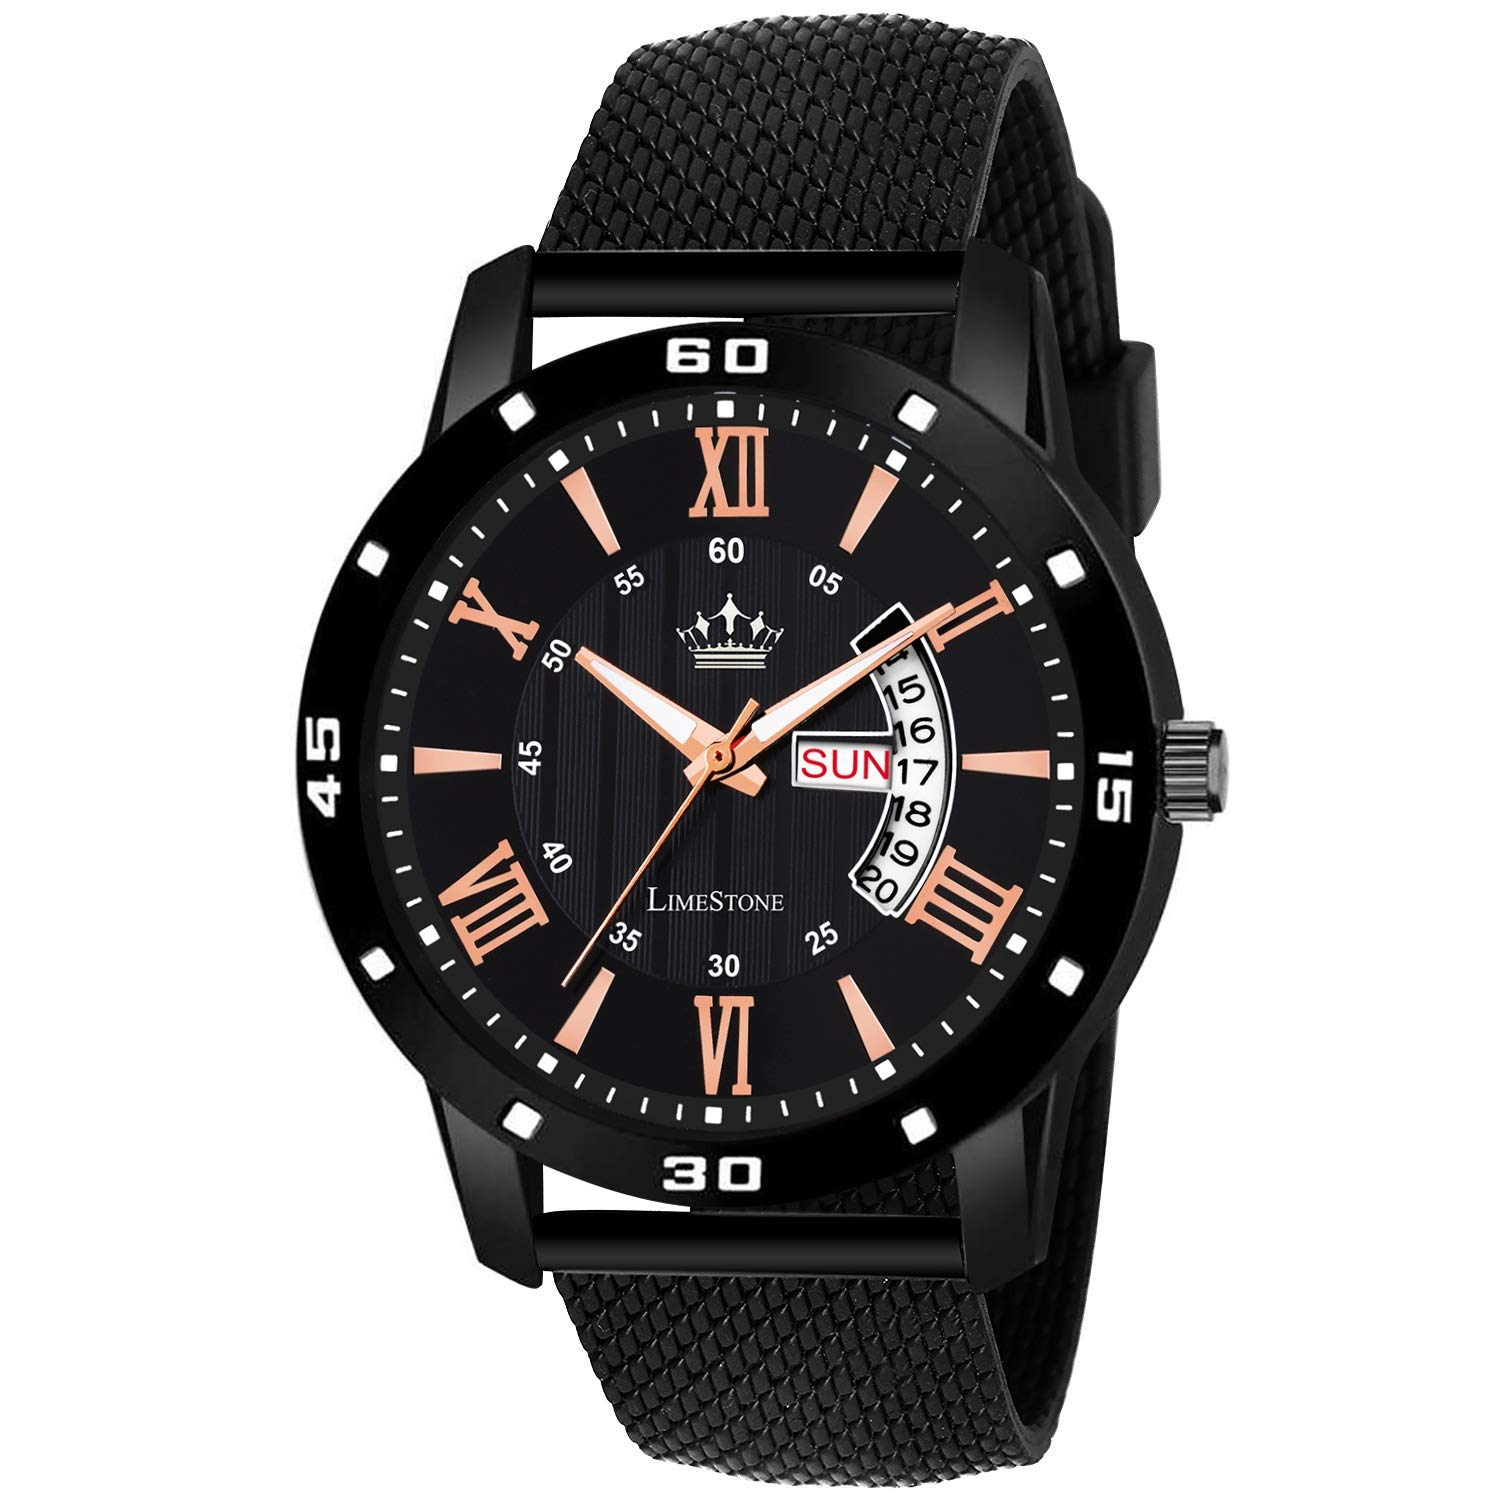 LimeStone Day and Date Functioning Black Quartz Watch for Boys - (LS2805) product image